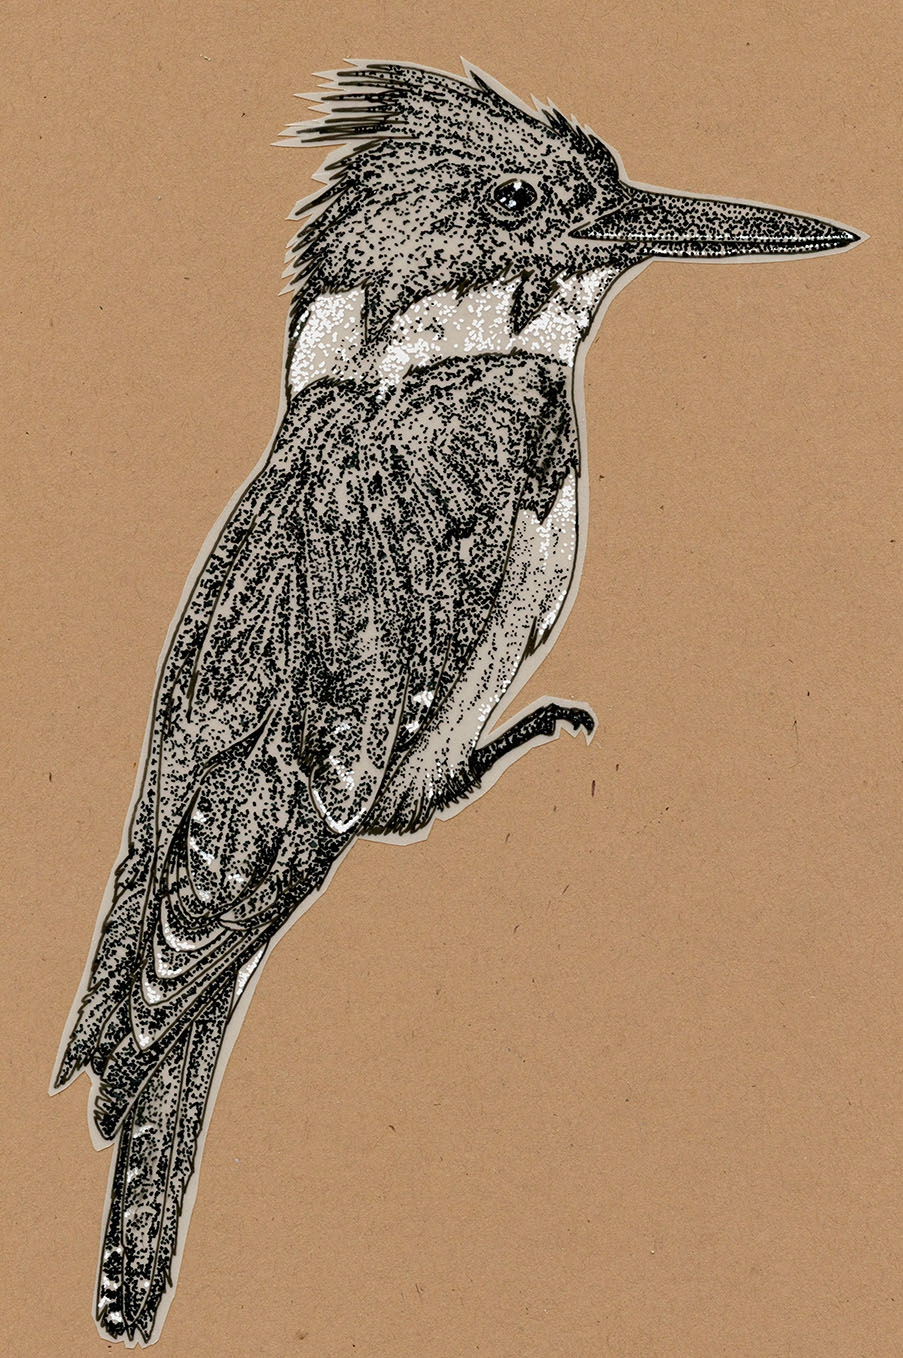 Kingfisher.  Pen illustration on frosted Mylar. ~5''x 3''. Part of a layered work using translucent patterning. Shown here on brown kraft paper. March 2014.